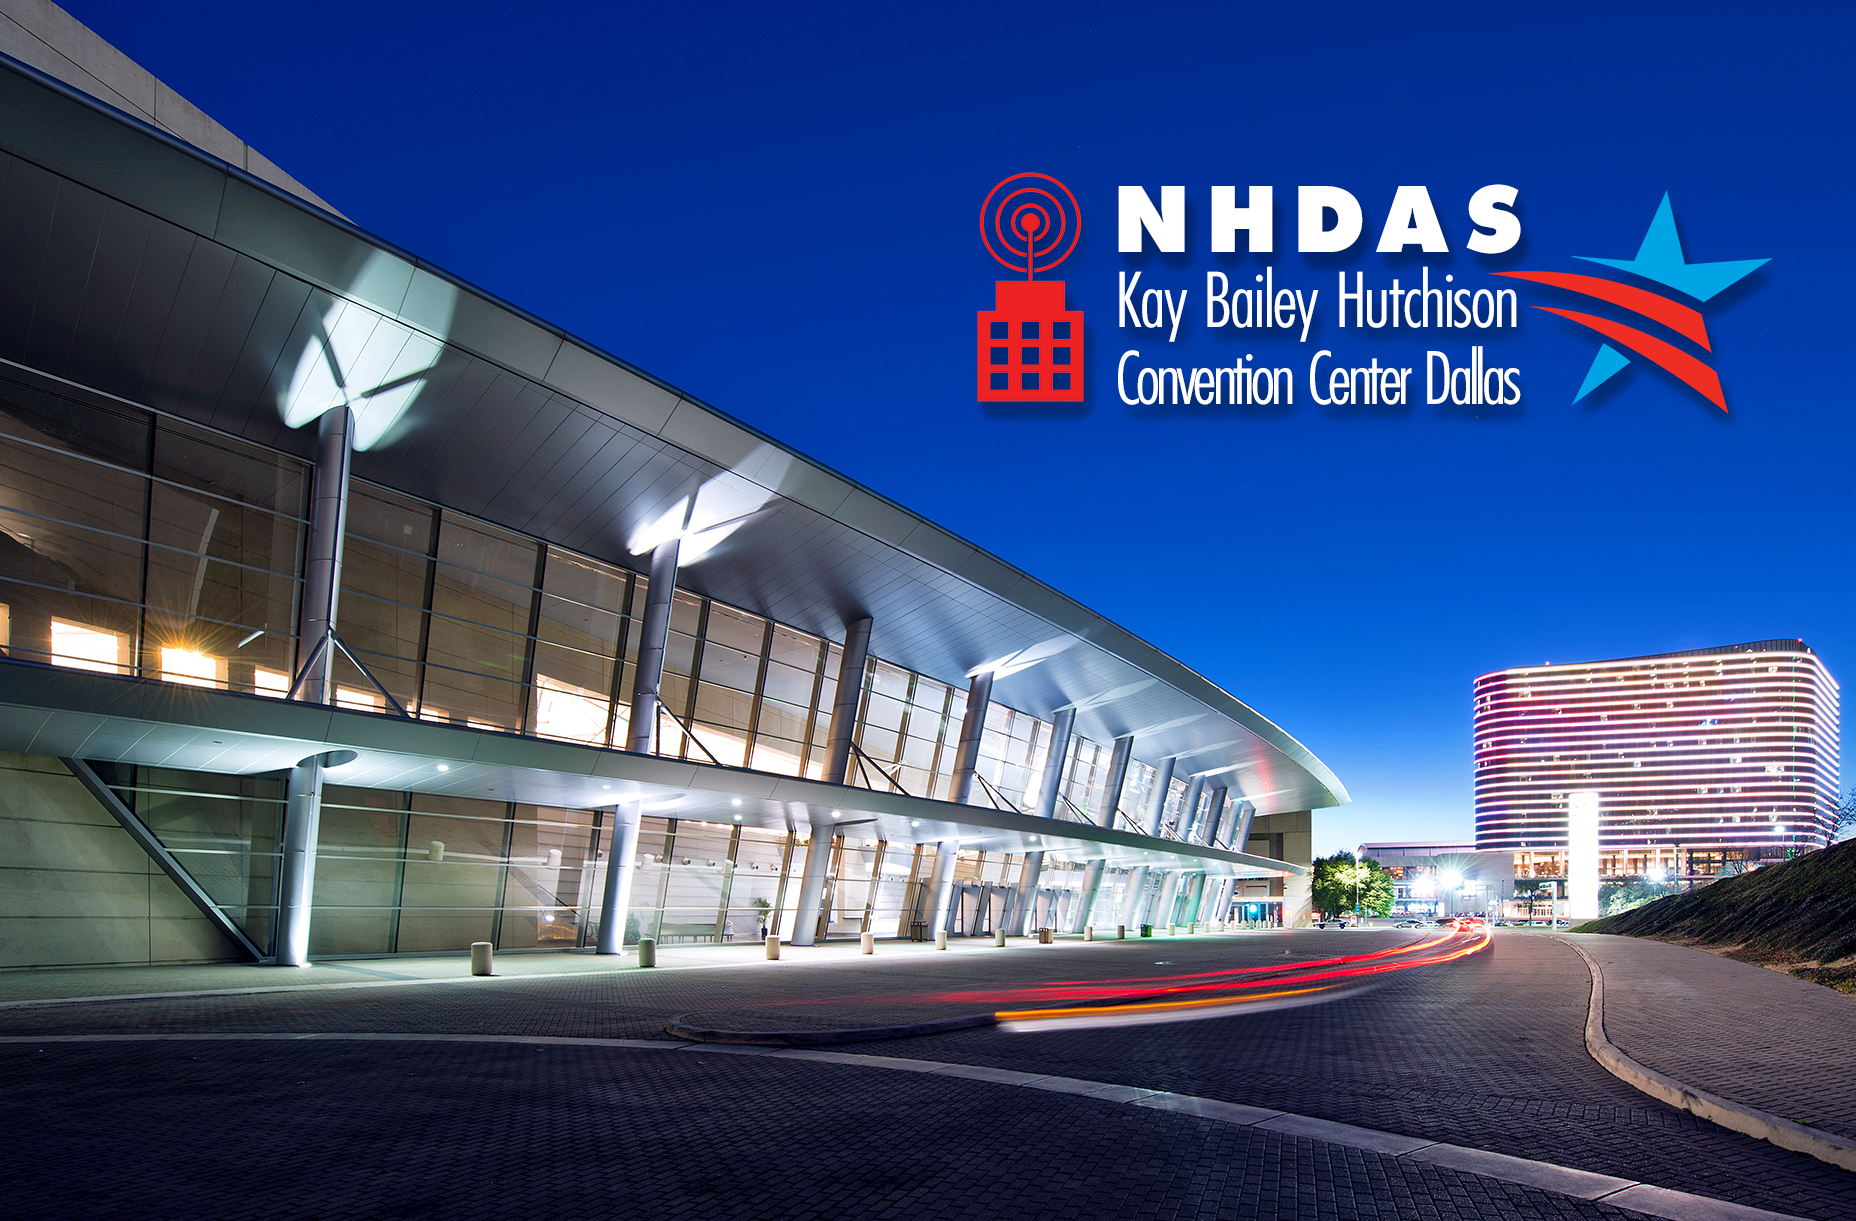 Smart City Networks Installs Neutral Host DAS at the Kay Bailey Hutchison Convention Center Dallas